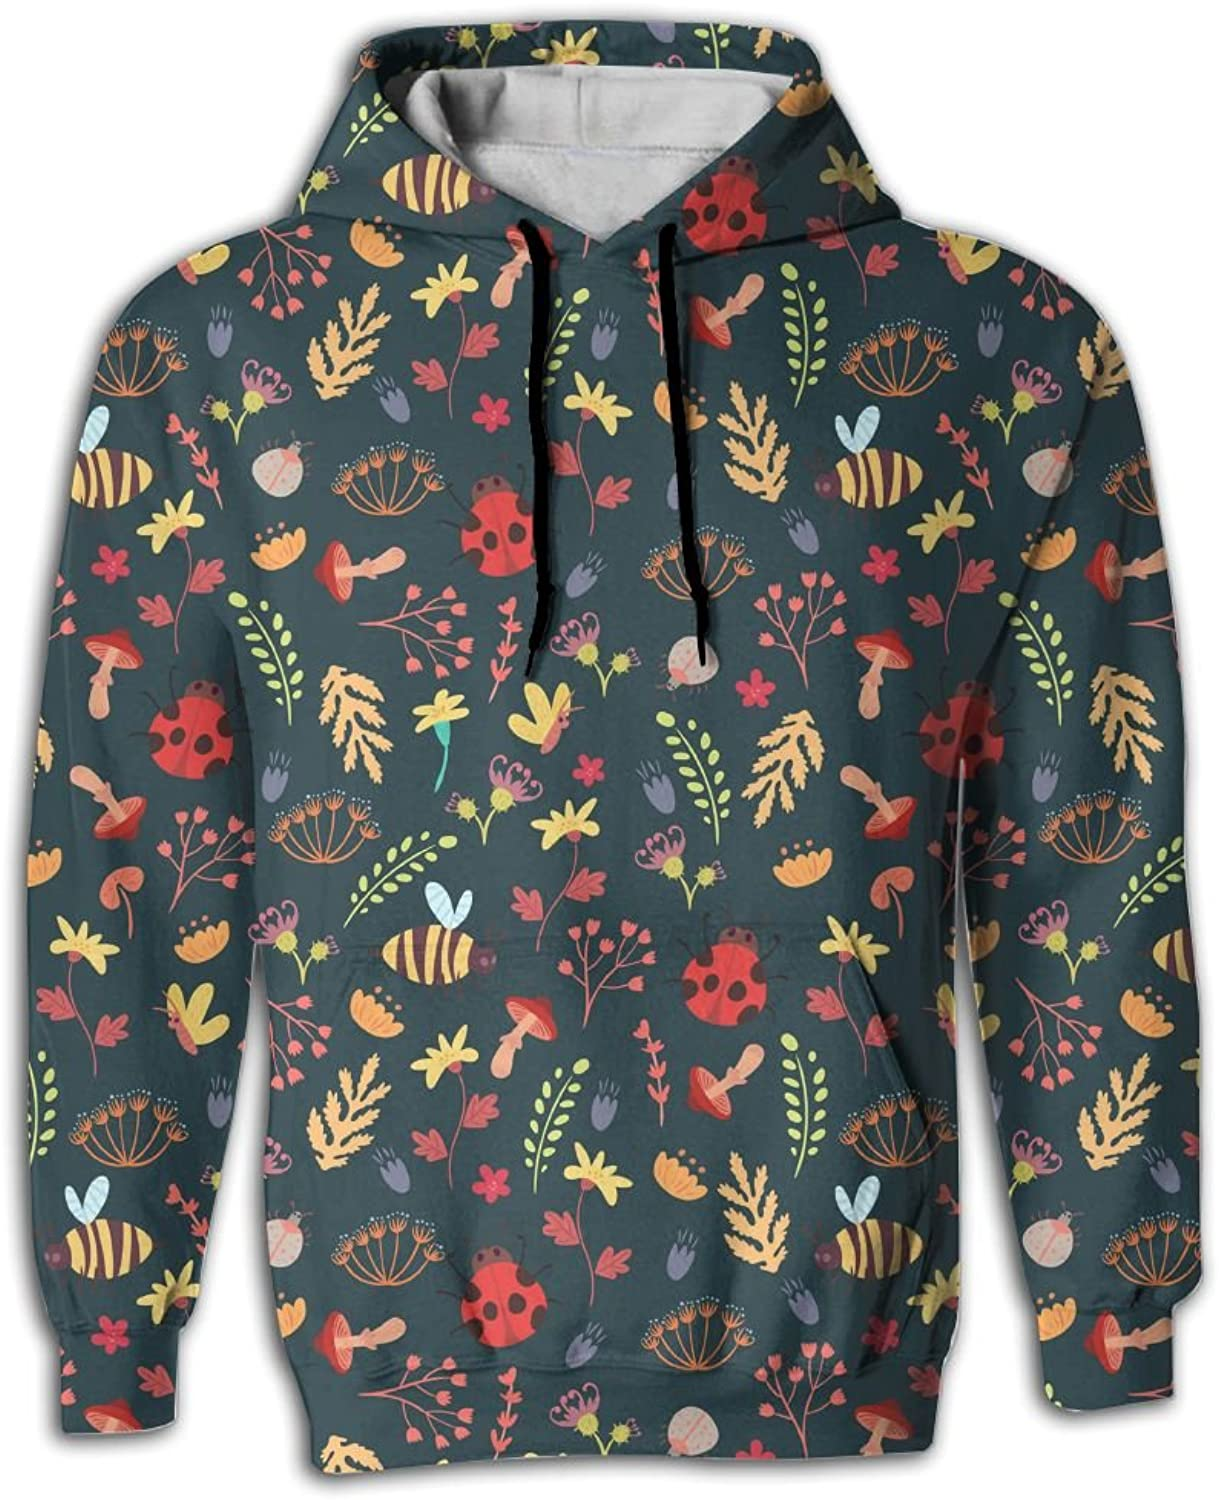 Wkylt Cute Forest and Bee Baby Funny Big Pockets Hoodie Creepypasta Hoodies for Men